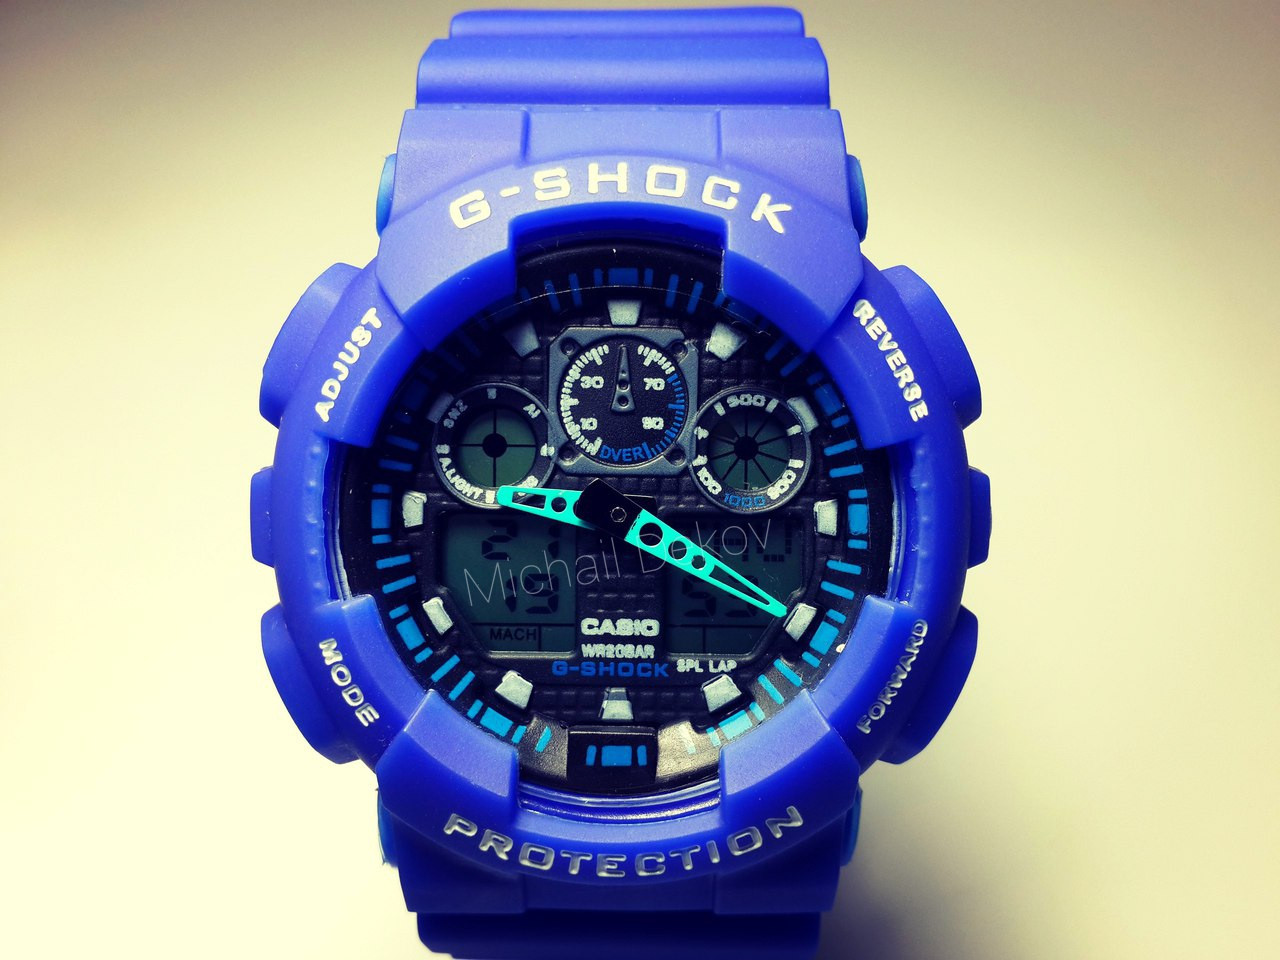 ЧАСЫ CASIO G-SHOCK GA-100  blue -реплика